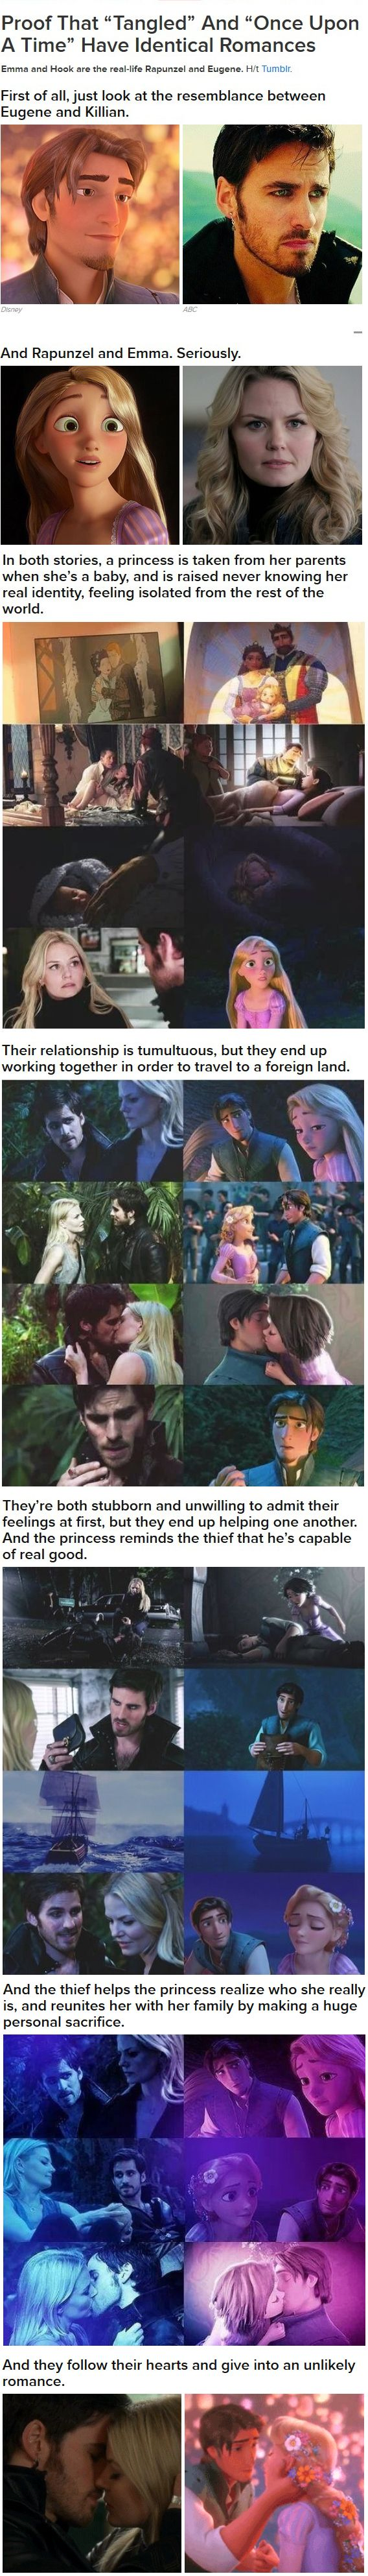 The Emma & Hook and Rapunzel & Flynn parallels Aw this is cute I just ruined once upon a time for myself however I hadn't gotten that far yet HAHAHAH